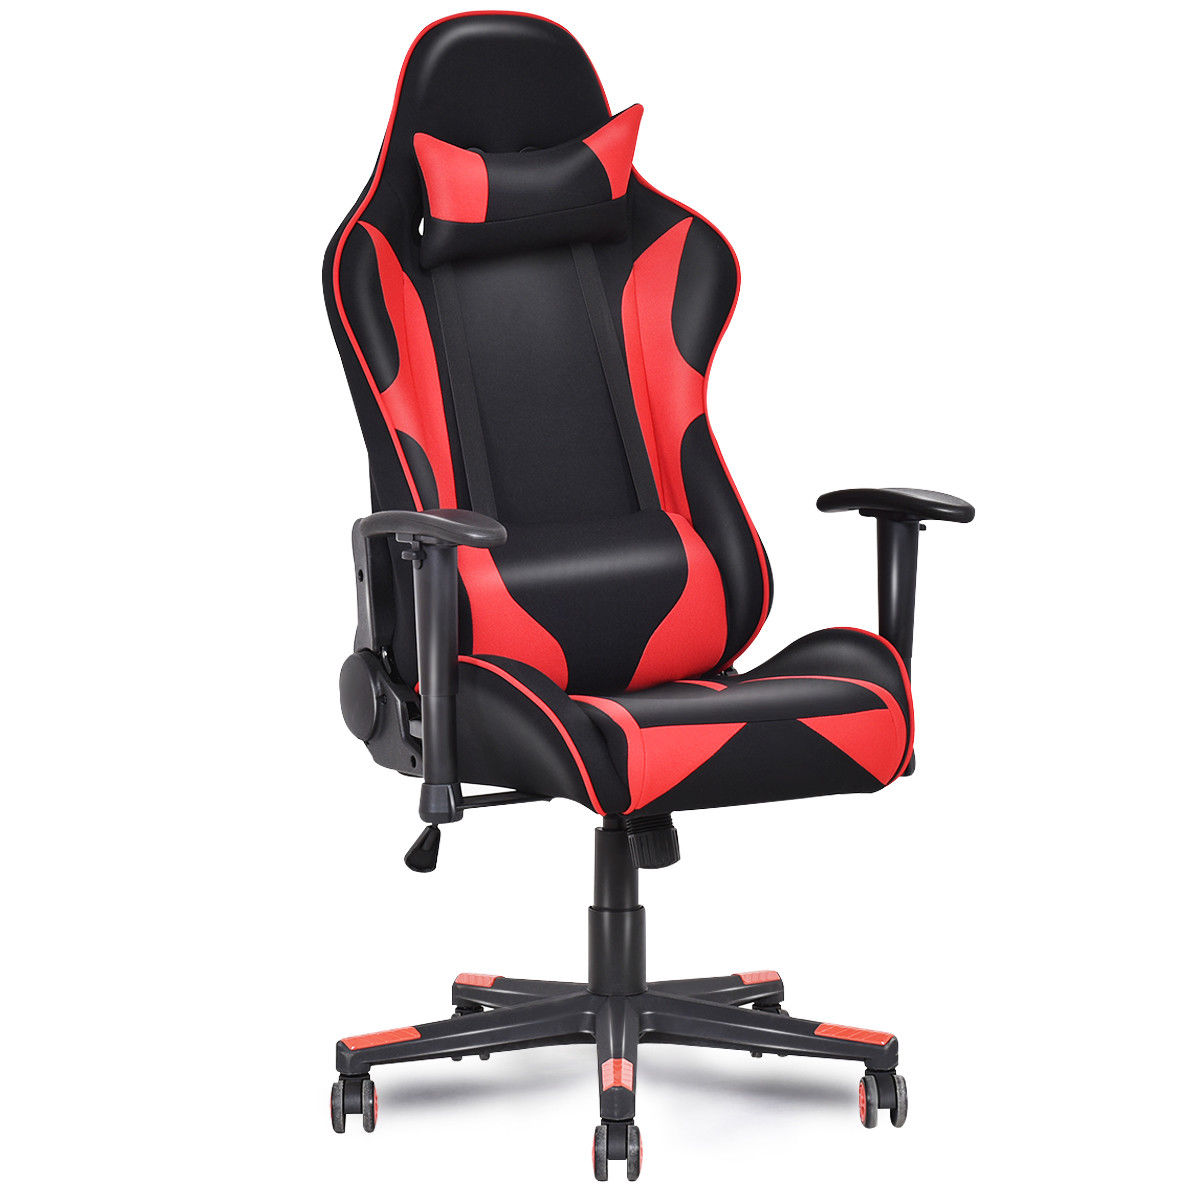 Giantex Racing Style High Back Recliner Gaming Chair Modern Mesh Swivel Computer Office Chair Ergonomic Office Furniture HW55608 240337 ergonomic chair quality pu wheel household office chair computer chair 3d thick cushion high breathable mesh